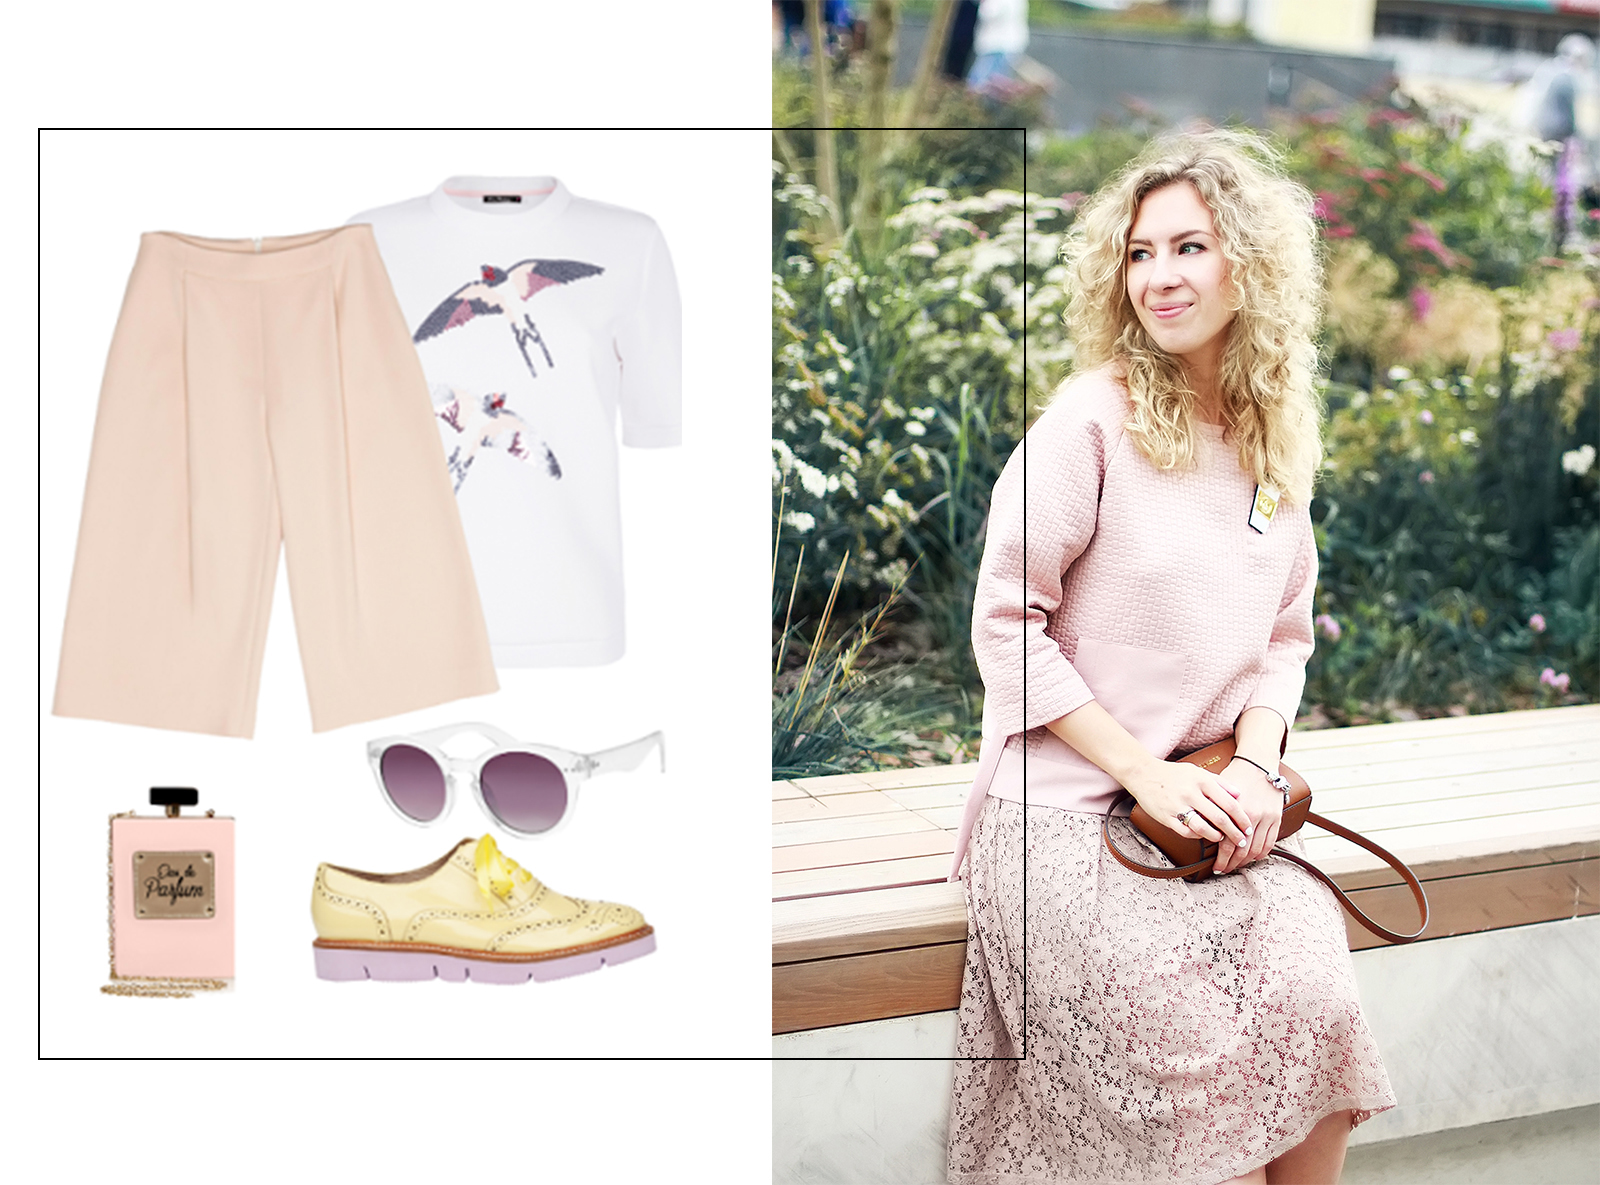 Margarita Maslova Ritalifestyle Fashion blogger Moscow Romantic style sport chic Pastel looks_pink_color